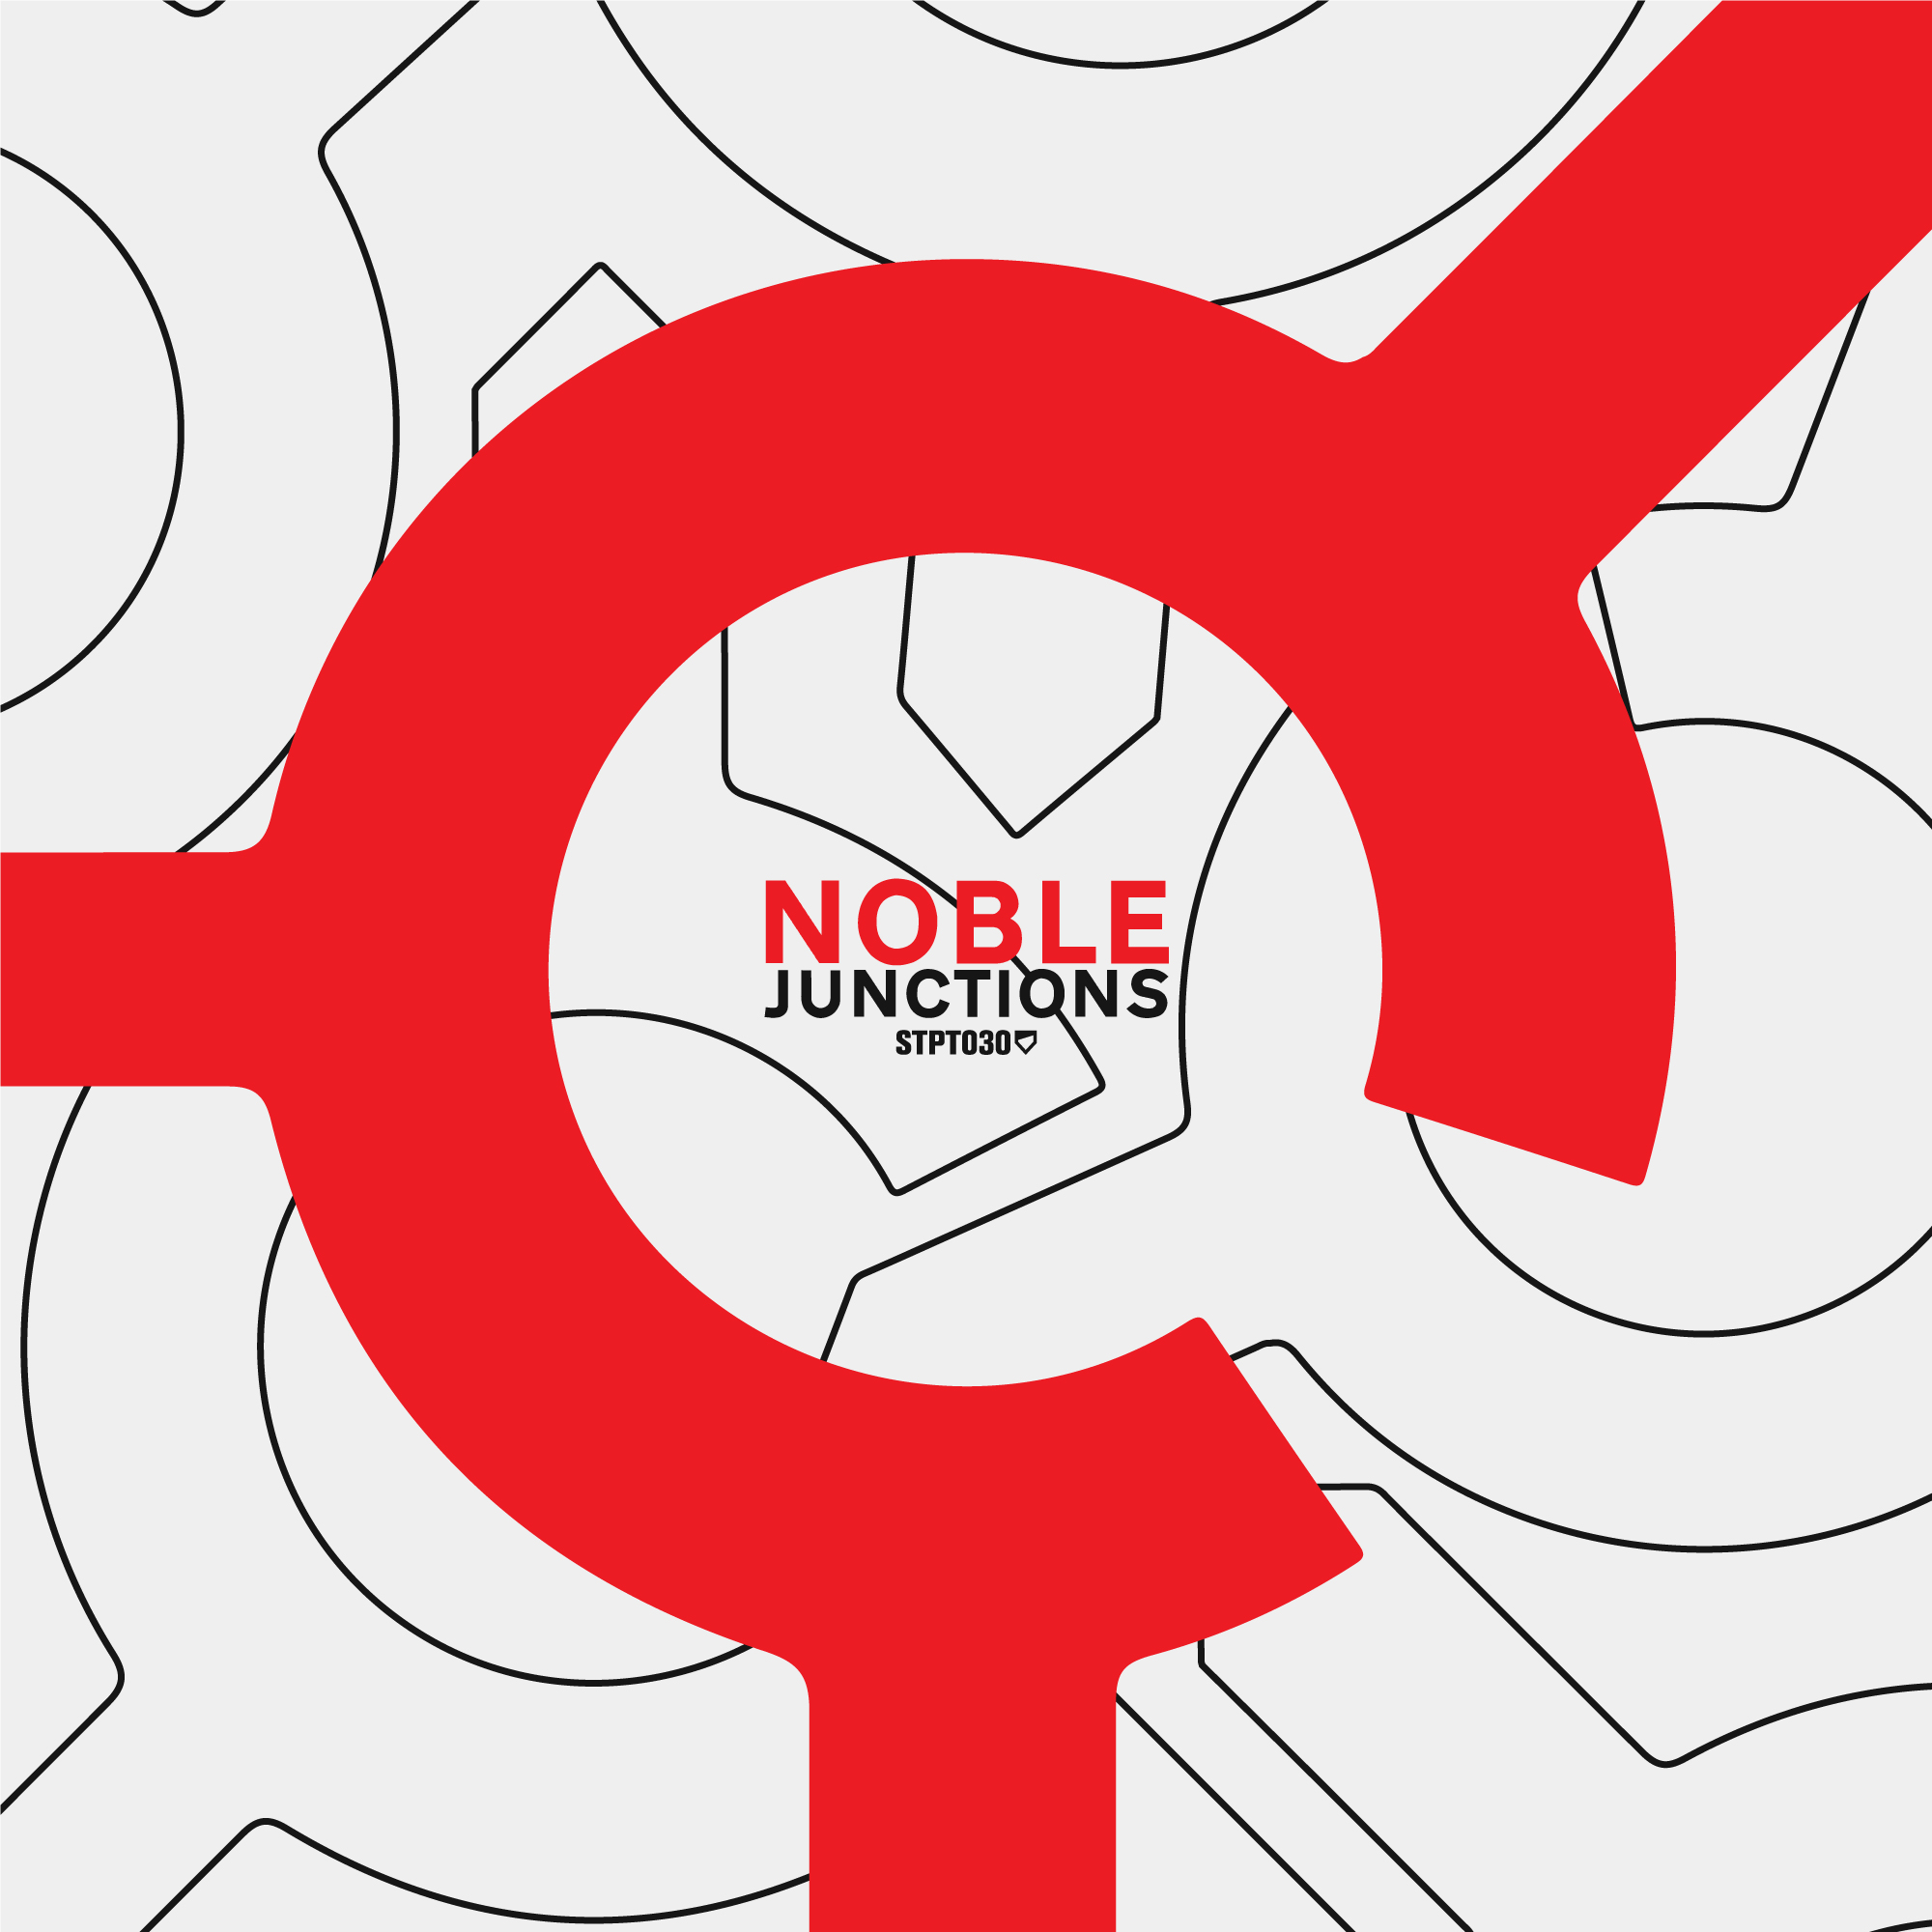 noble junctions